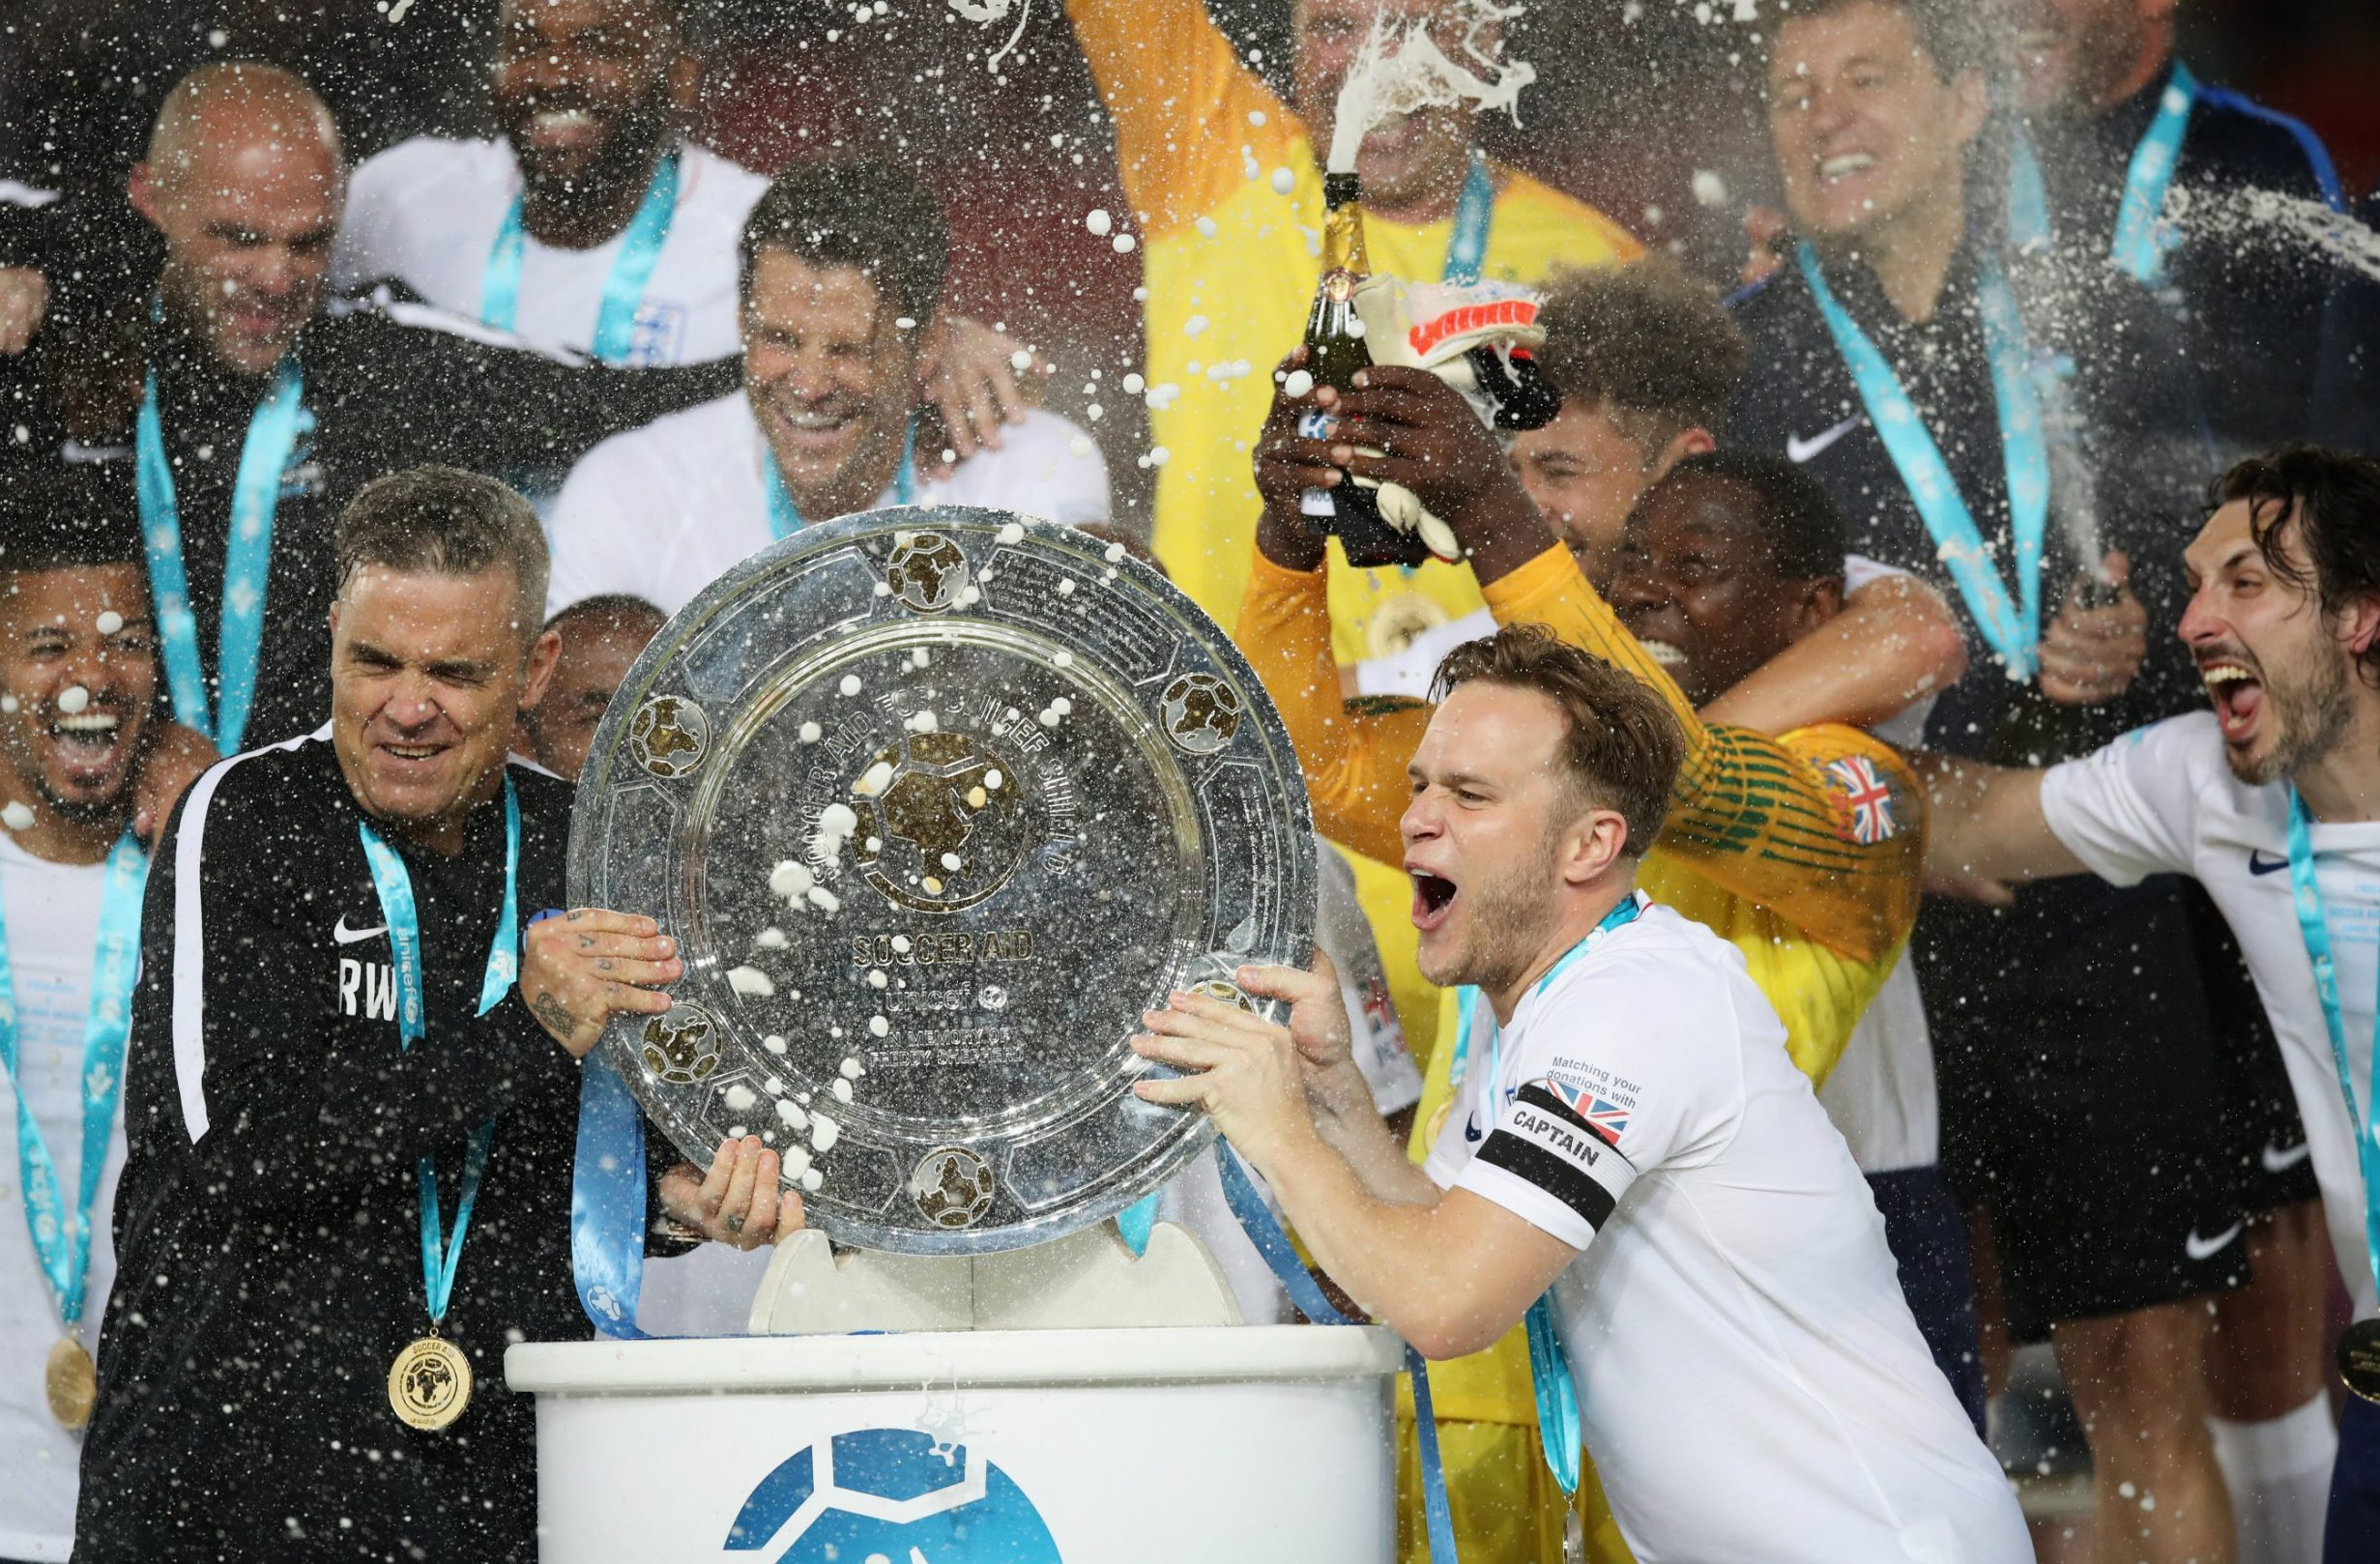 MANCHESTER, ENGLAND - JUNE 10: Olly Murs of England lifts the trophy in victory with Robbie Williams of England and team mates after the Soccer Aid for UNICEF 2018 match between Englannd and the Rest of the World at Old Trafford on June 10, 2018 in Manchester, England. (Photo by Lynne Cameron/Getty Images)